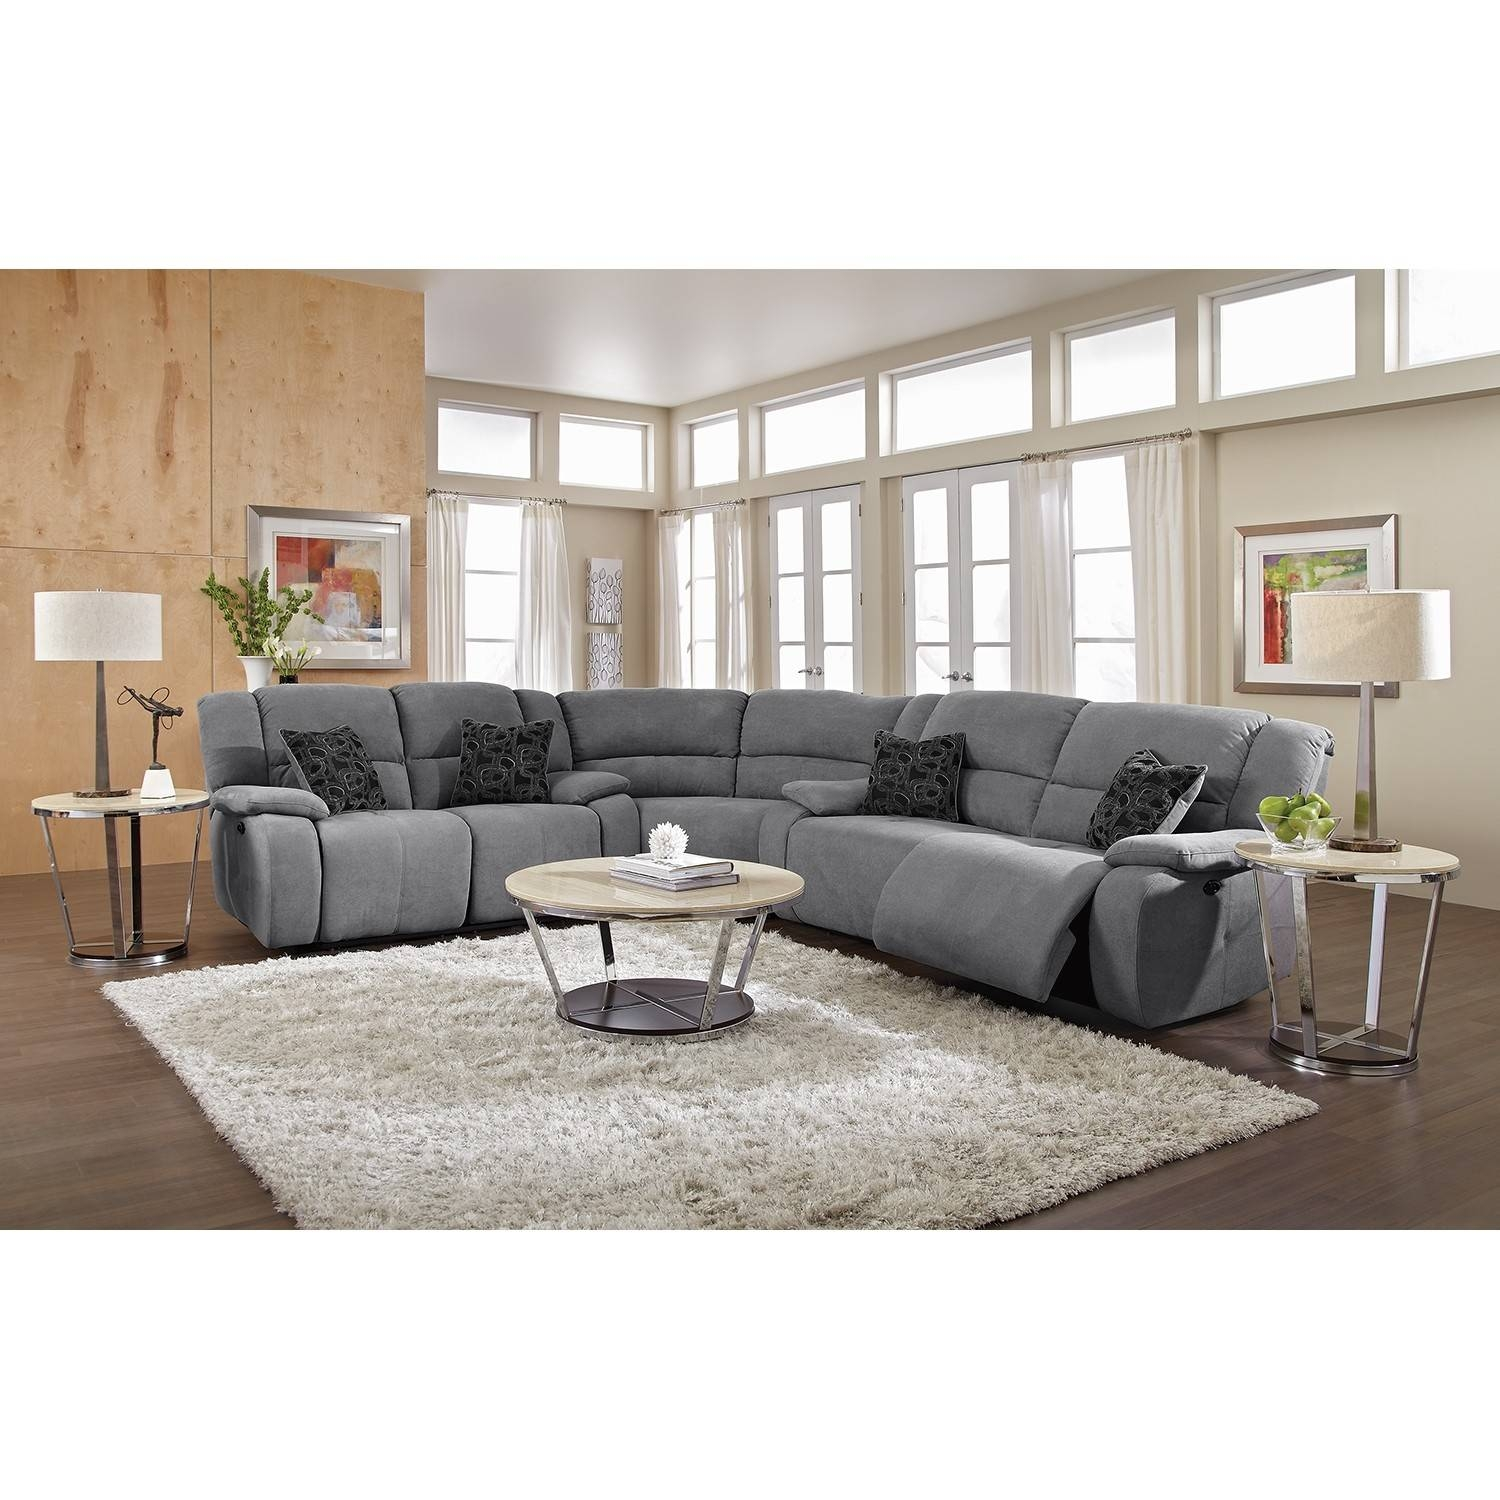 Furniture: Brown Velvet Curved Sectional Sofa For Cool Living Room with Cool Sofa Ideas (Image 12 of 30)